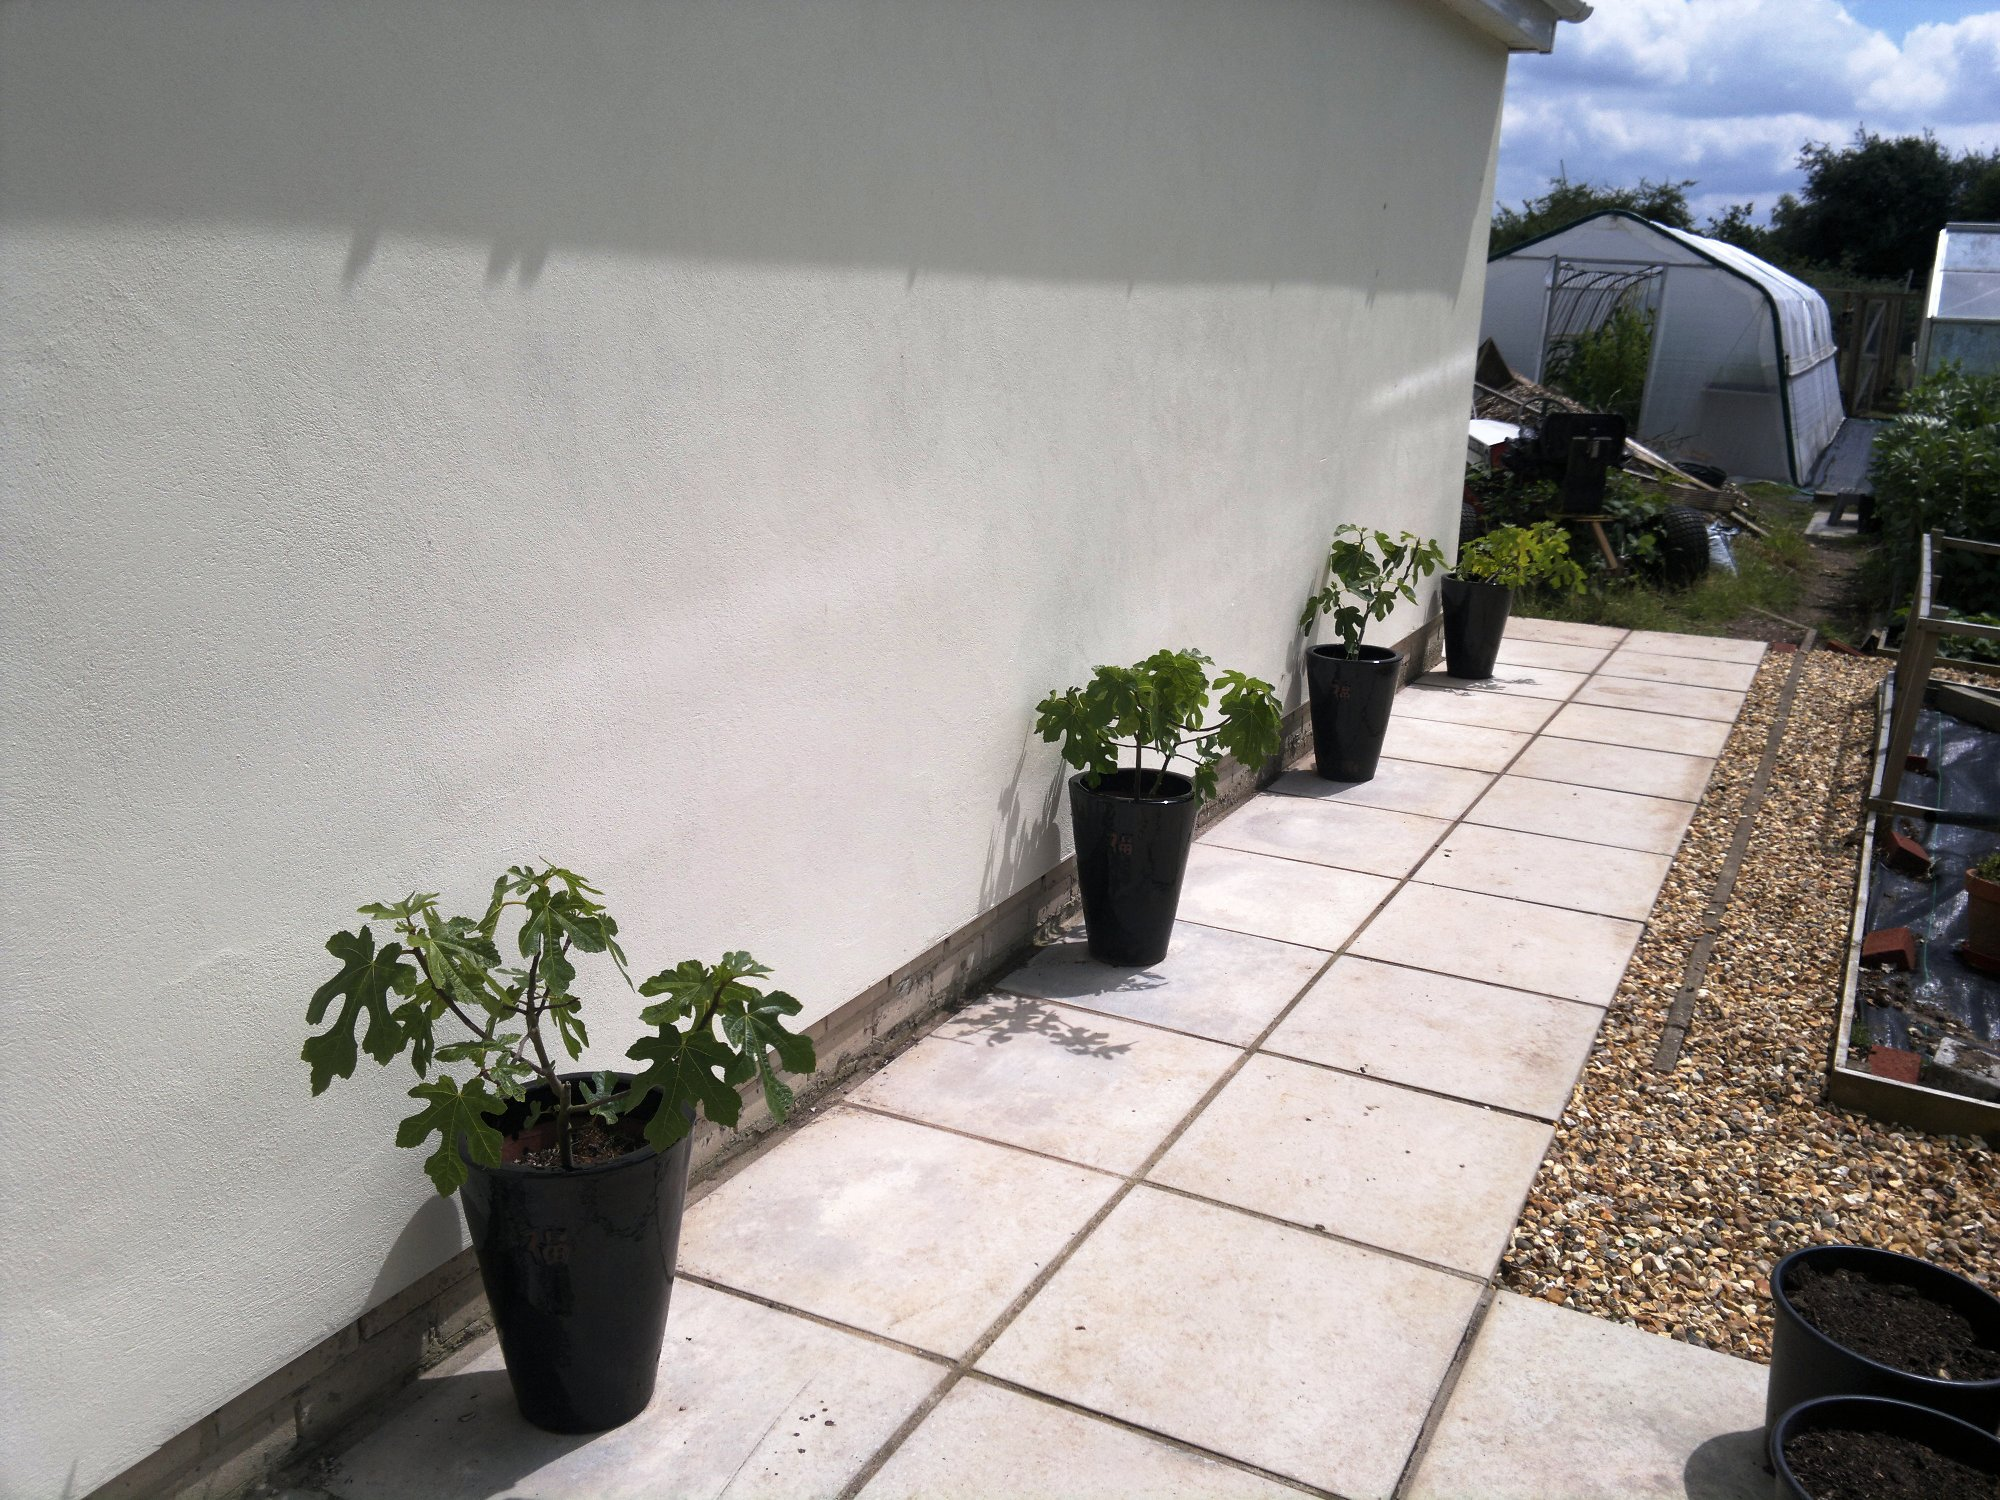 Small fig trees along the garage wall